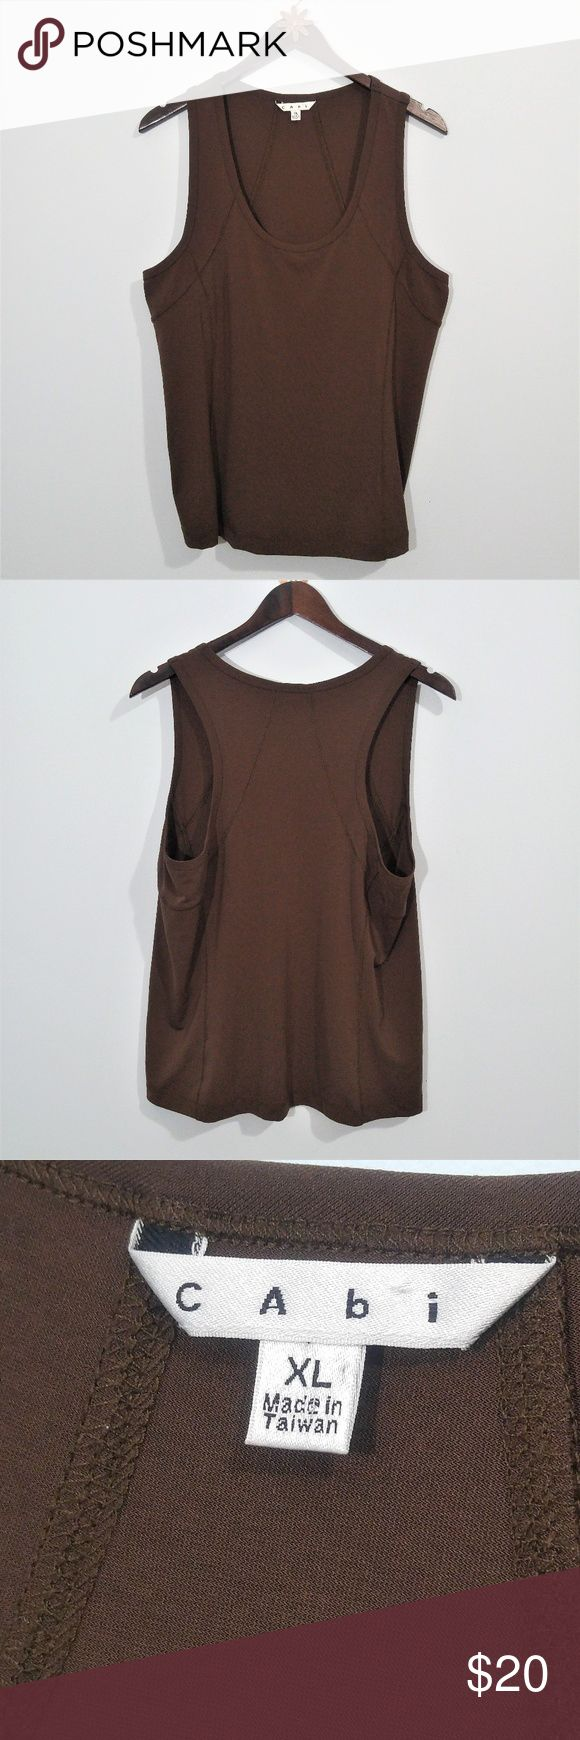 "CAbi #958 Chocolate Brown Luxe Stretch Tank Top XL Very gently pre-loved Cabi 958 brown semi fit and stretchy, sleeveless racerback style tank top. 92% polyester, 8% spandex.  Approx measurements: Underarm to underarm 20"" Length shoulder to bottom hem 25.5""  Same day or next business day shipping. Offers always welcomed & bundles always discounted. ""Like"" my items for private flash sales! Thanks for looking :) CAbi Tops Tank Tops"